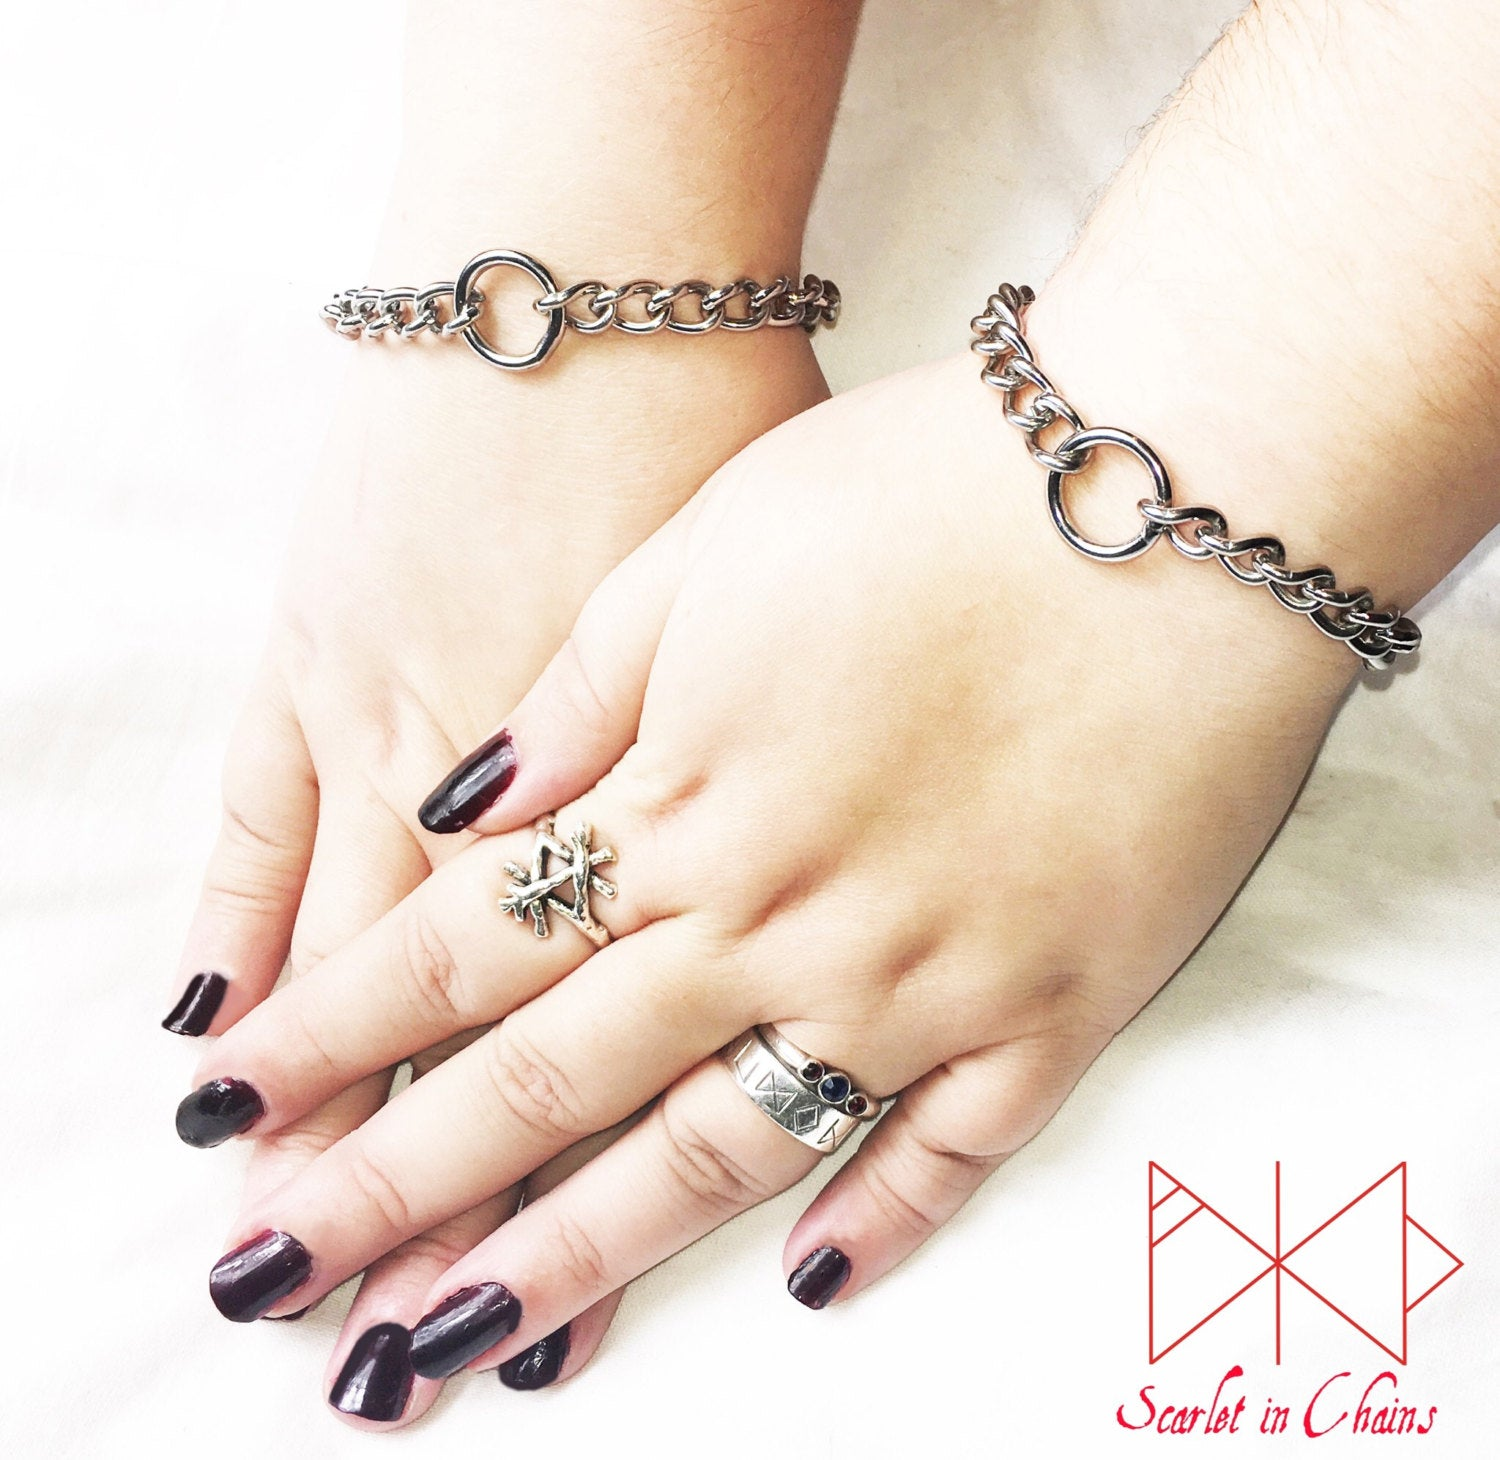 Pair of mini Luna cuffs worn, stainless steel mini chain cuffs with a central O ring